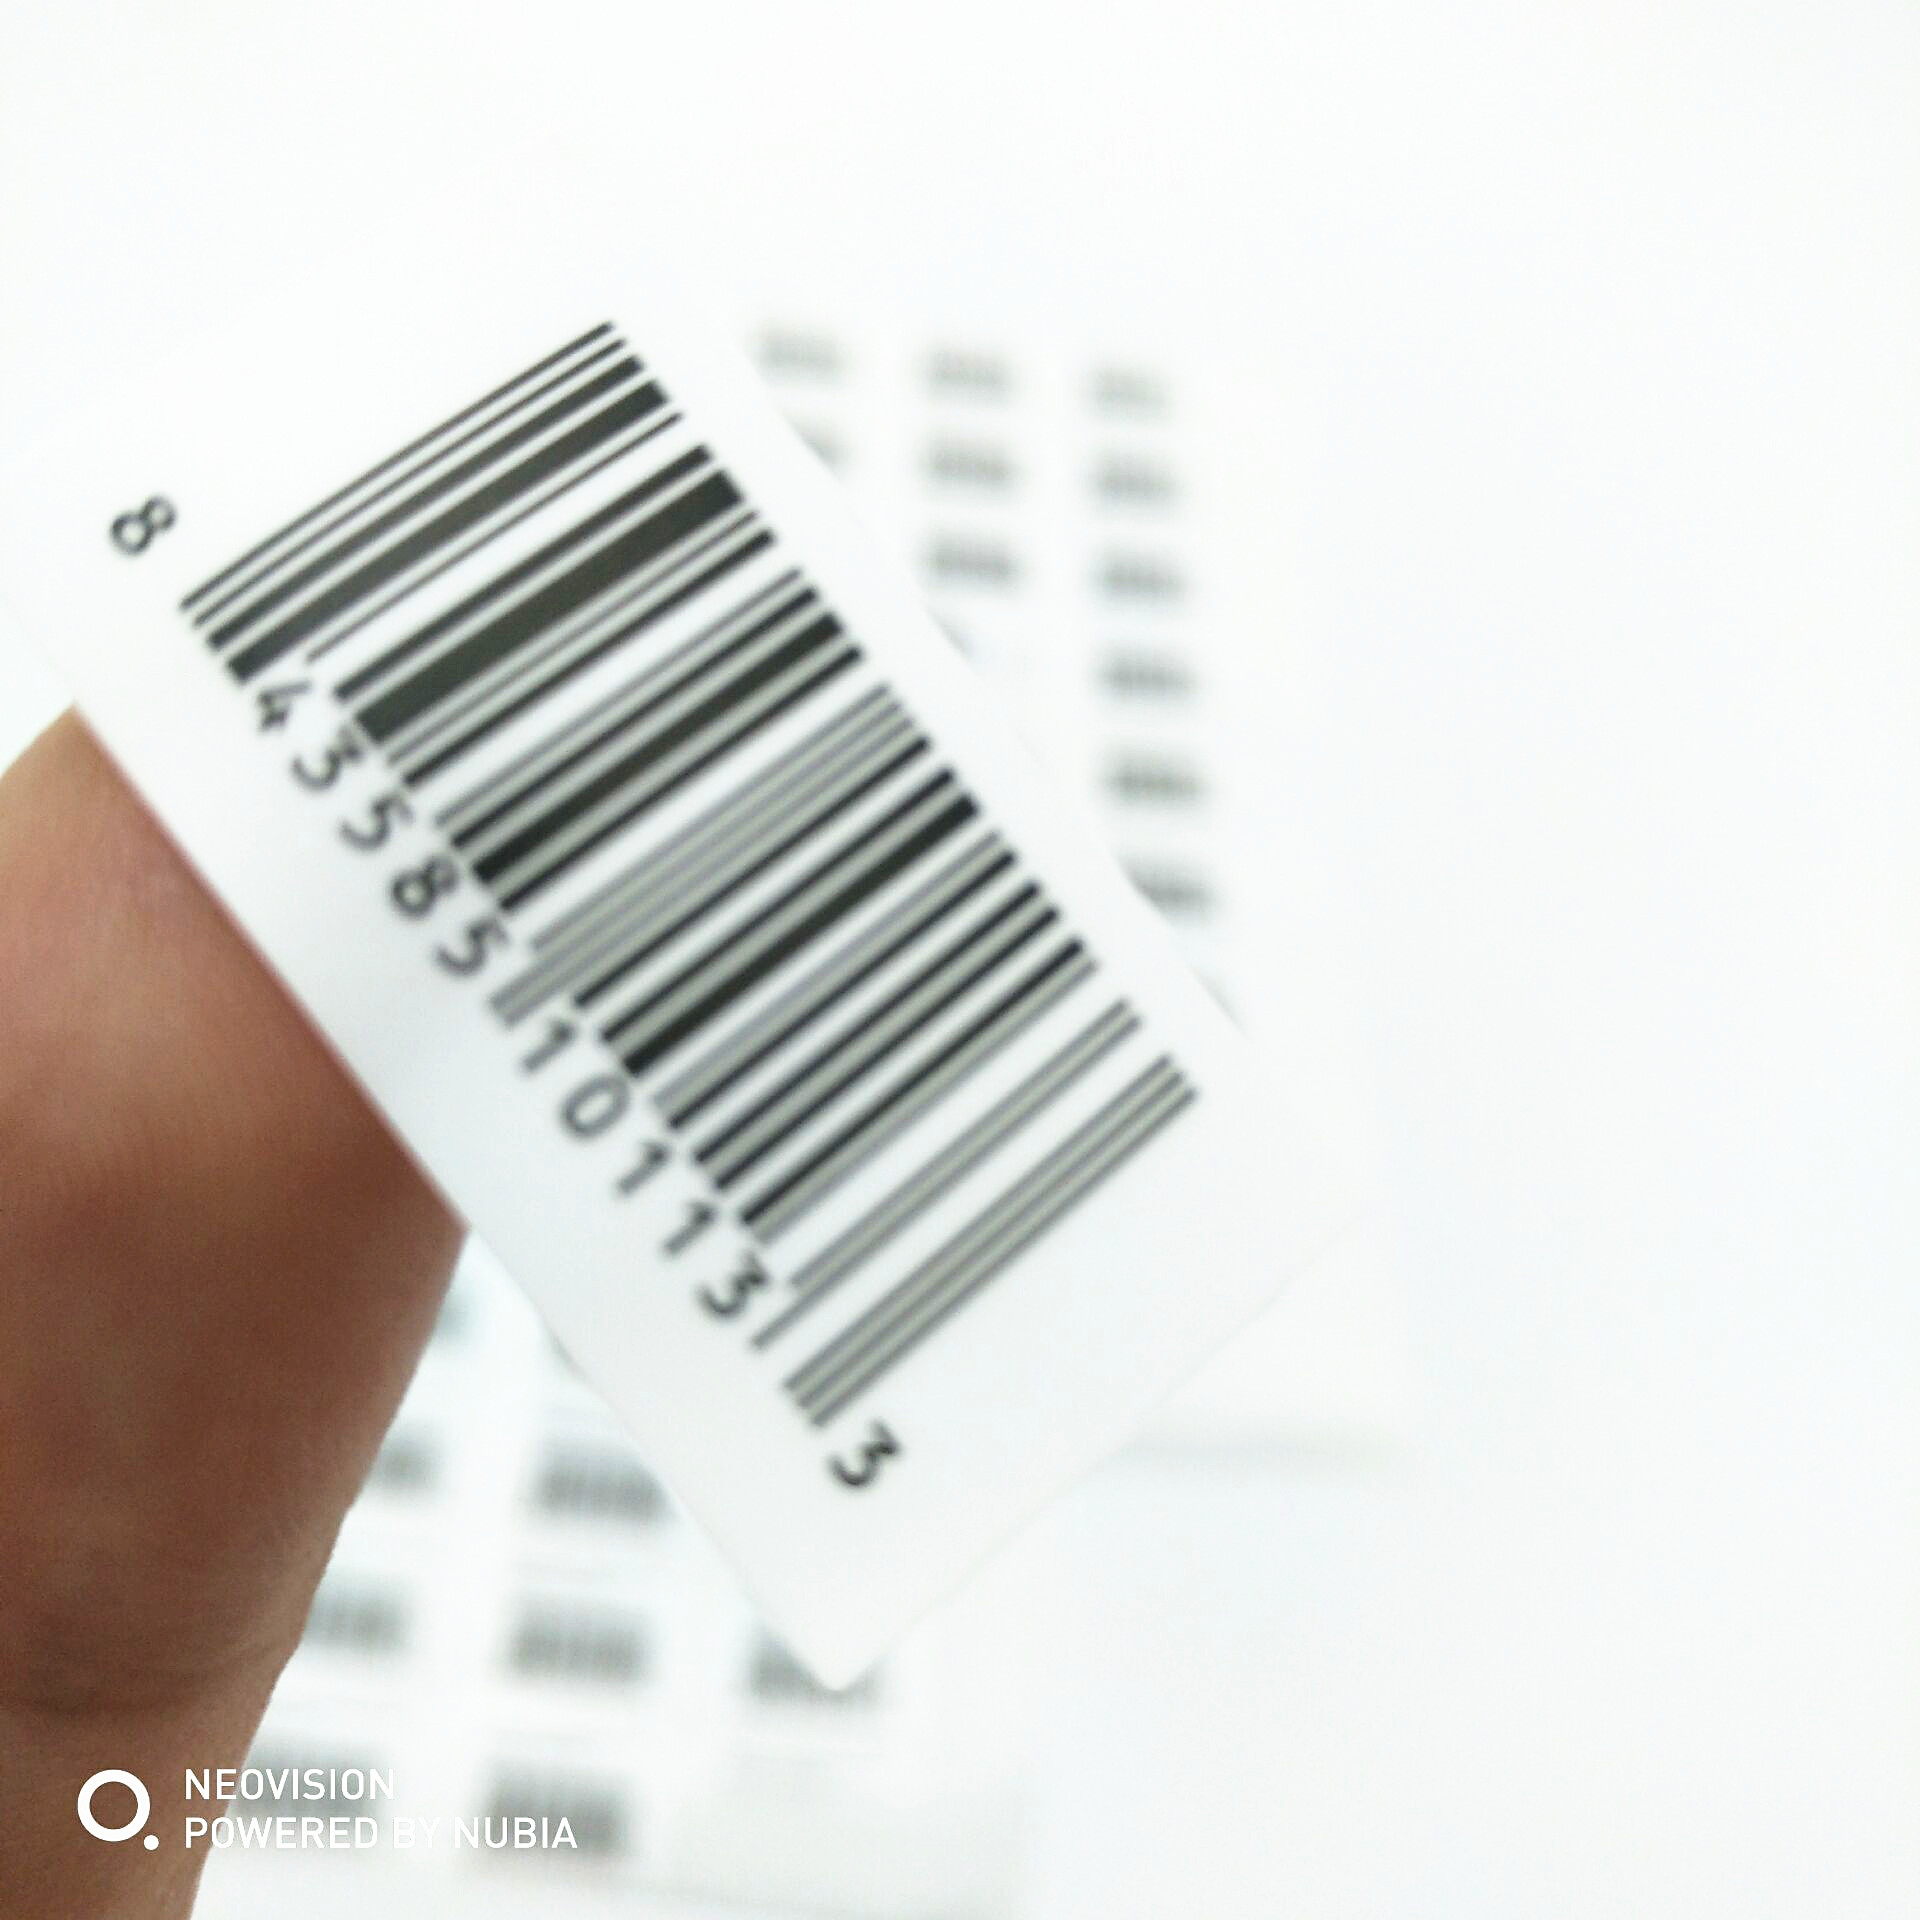 Private Thermal Transfer Roll Coated Blank Barcode Self Adhesive Label